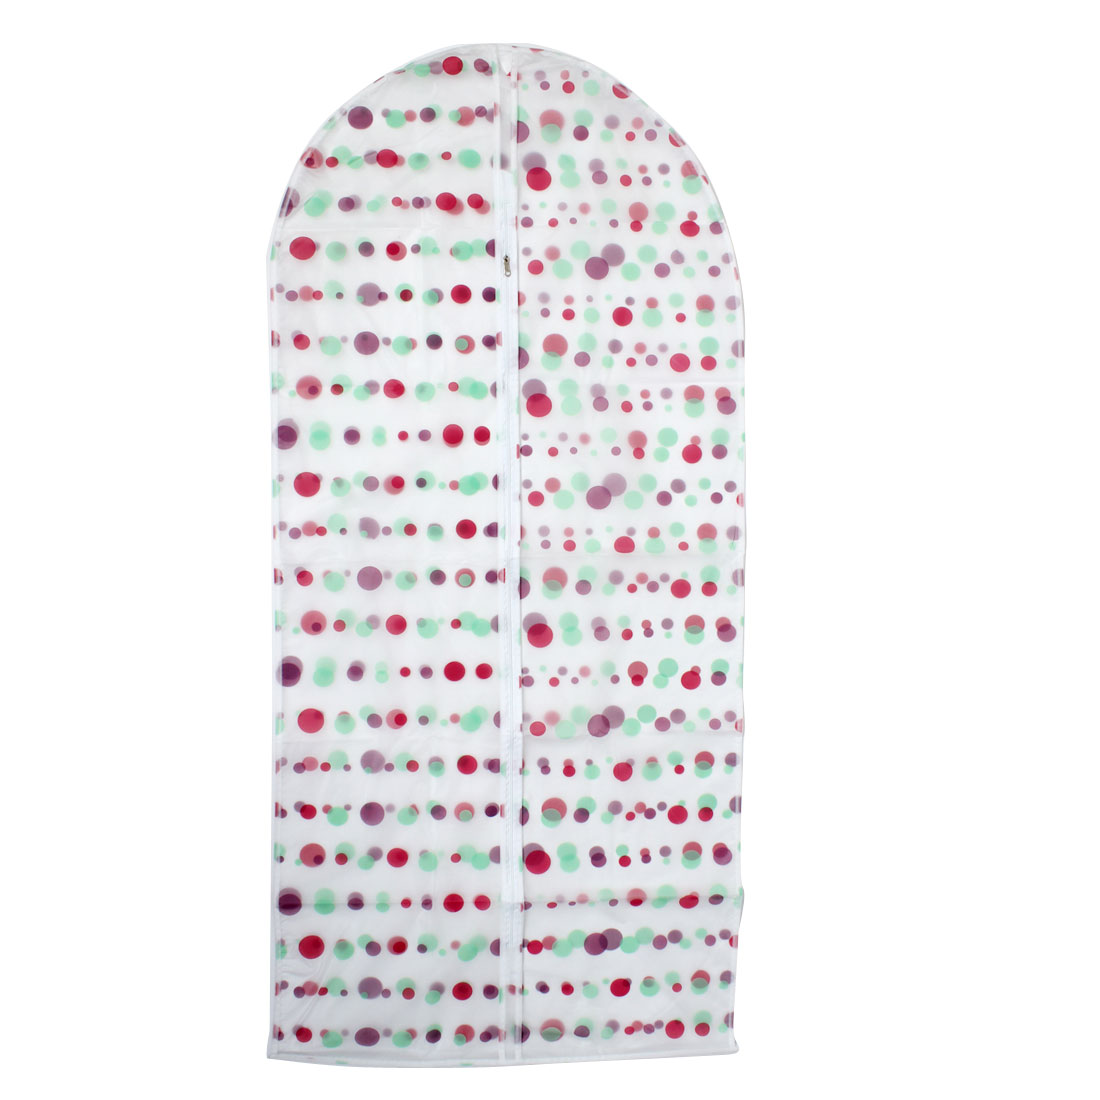 Clothes Suit Garment PEVA Dots Pattern Dustproof Cover Bag 130cm x 60cm